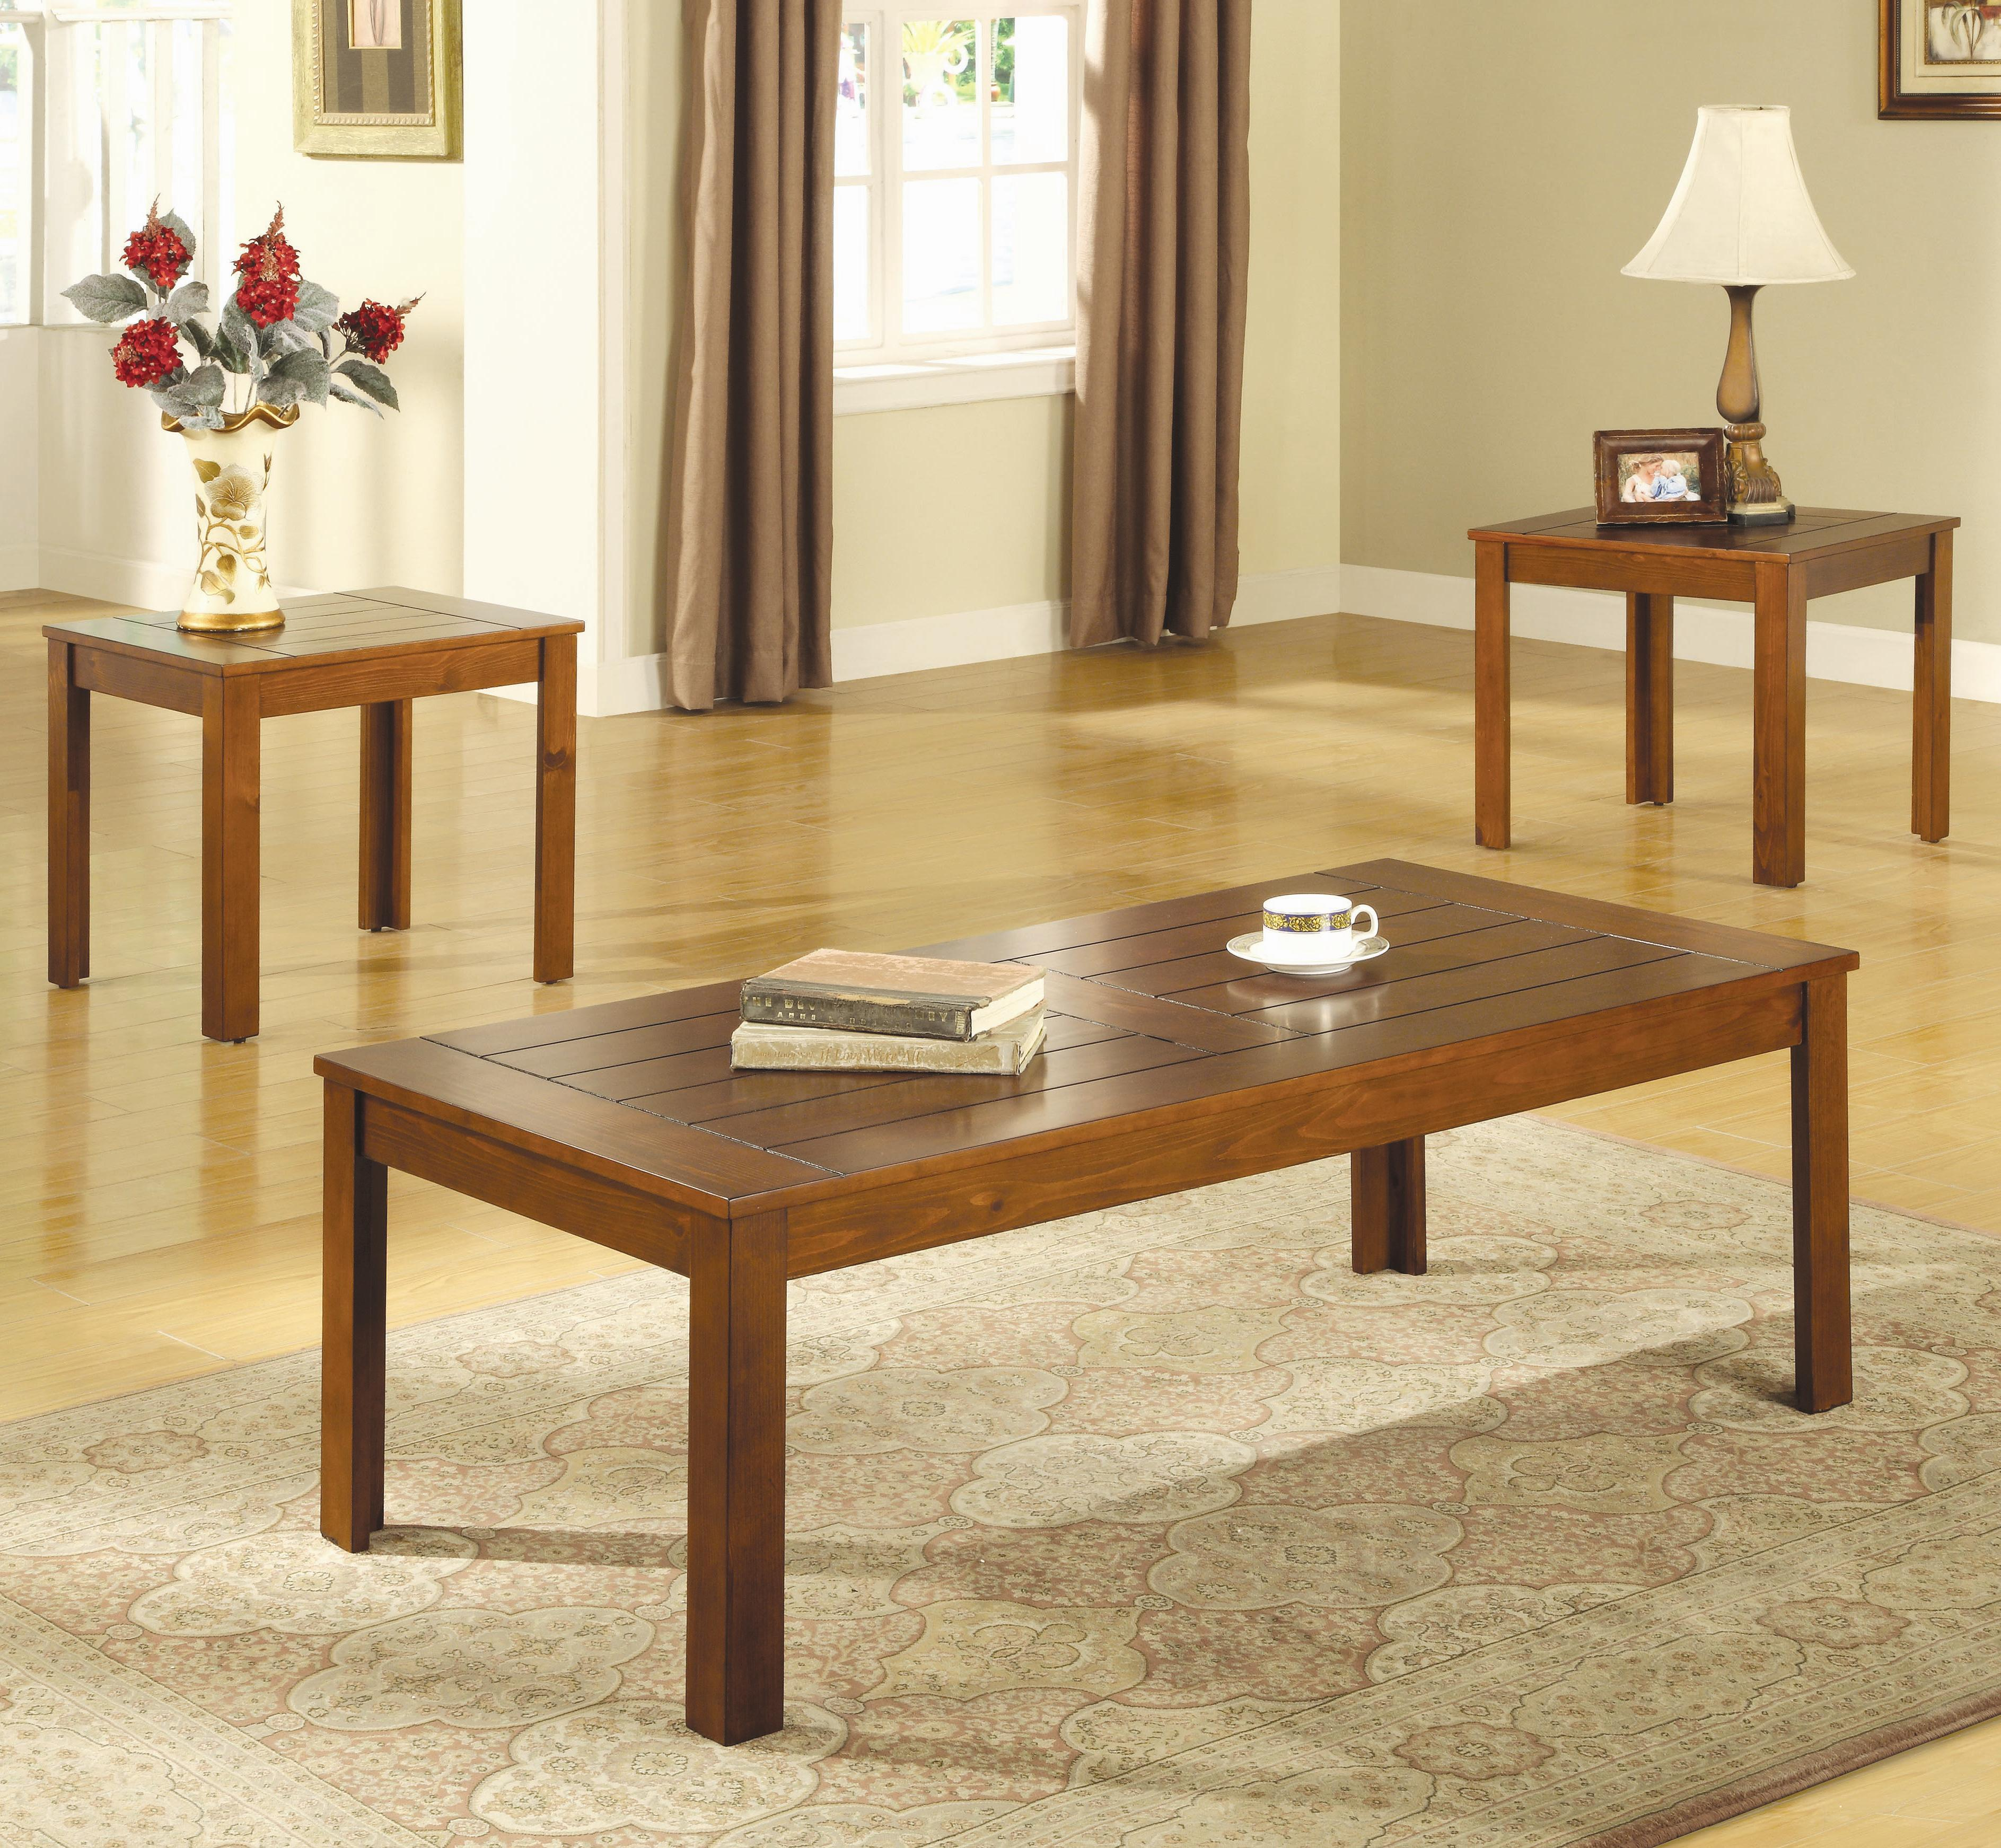 Coaster Occasional Table Sets 3 Piece Table Set - Item Number: 700570